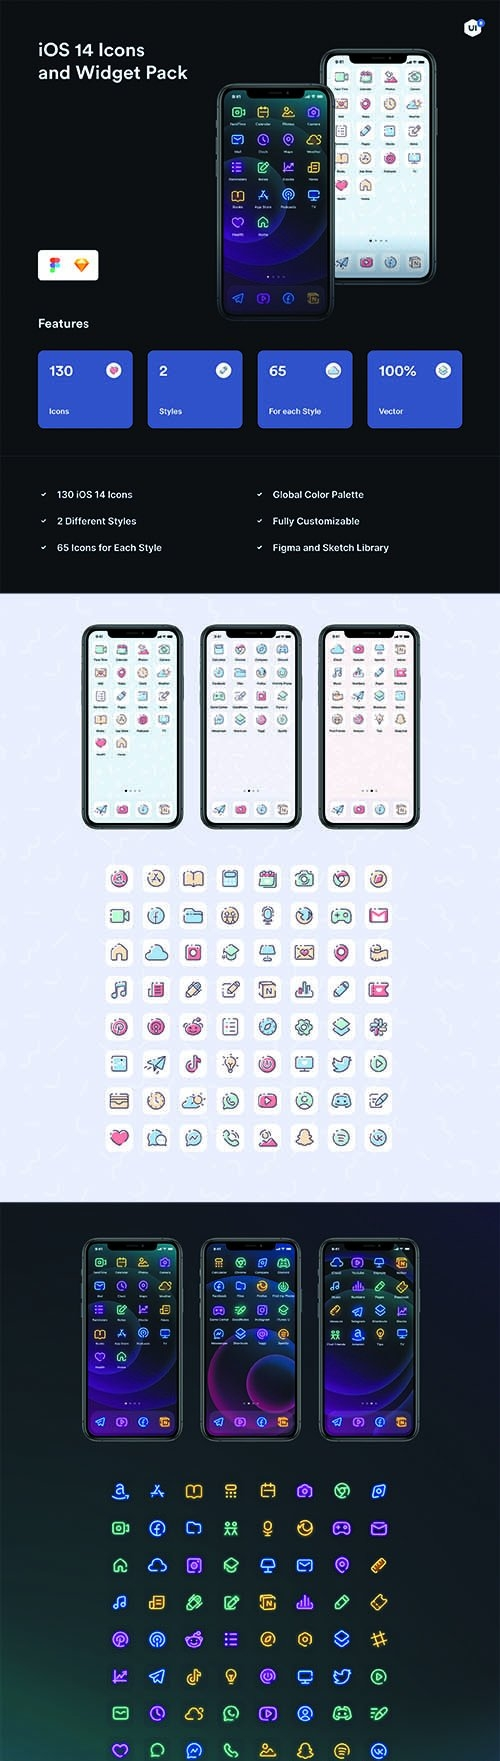 iOS 14 Icons and Widget Pack